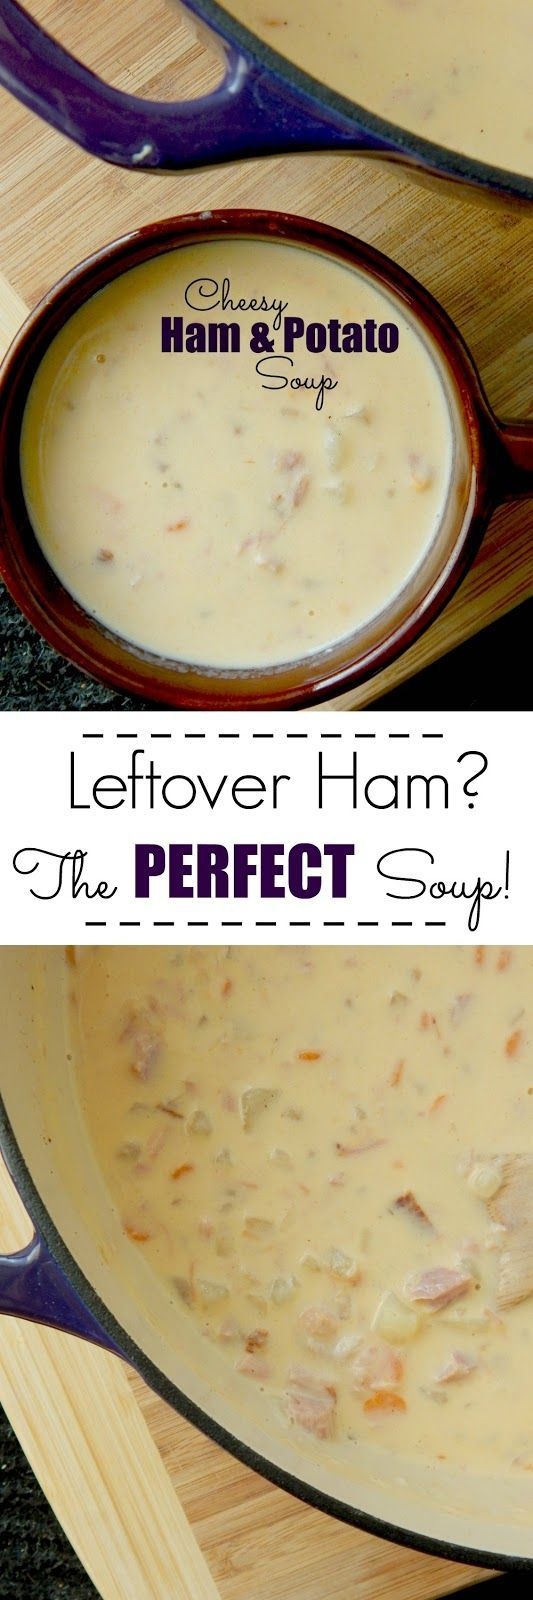 Cheesy Ham & Potato Soup...a warm, hearty bowl of comfort food!  Loaded with ham, potatoes, carrots and of course CHEESE!